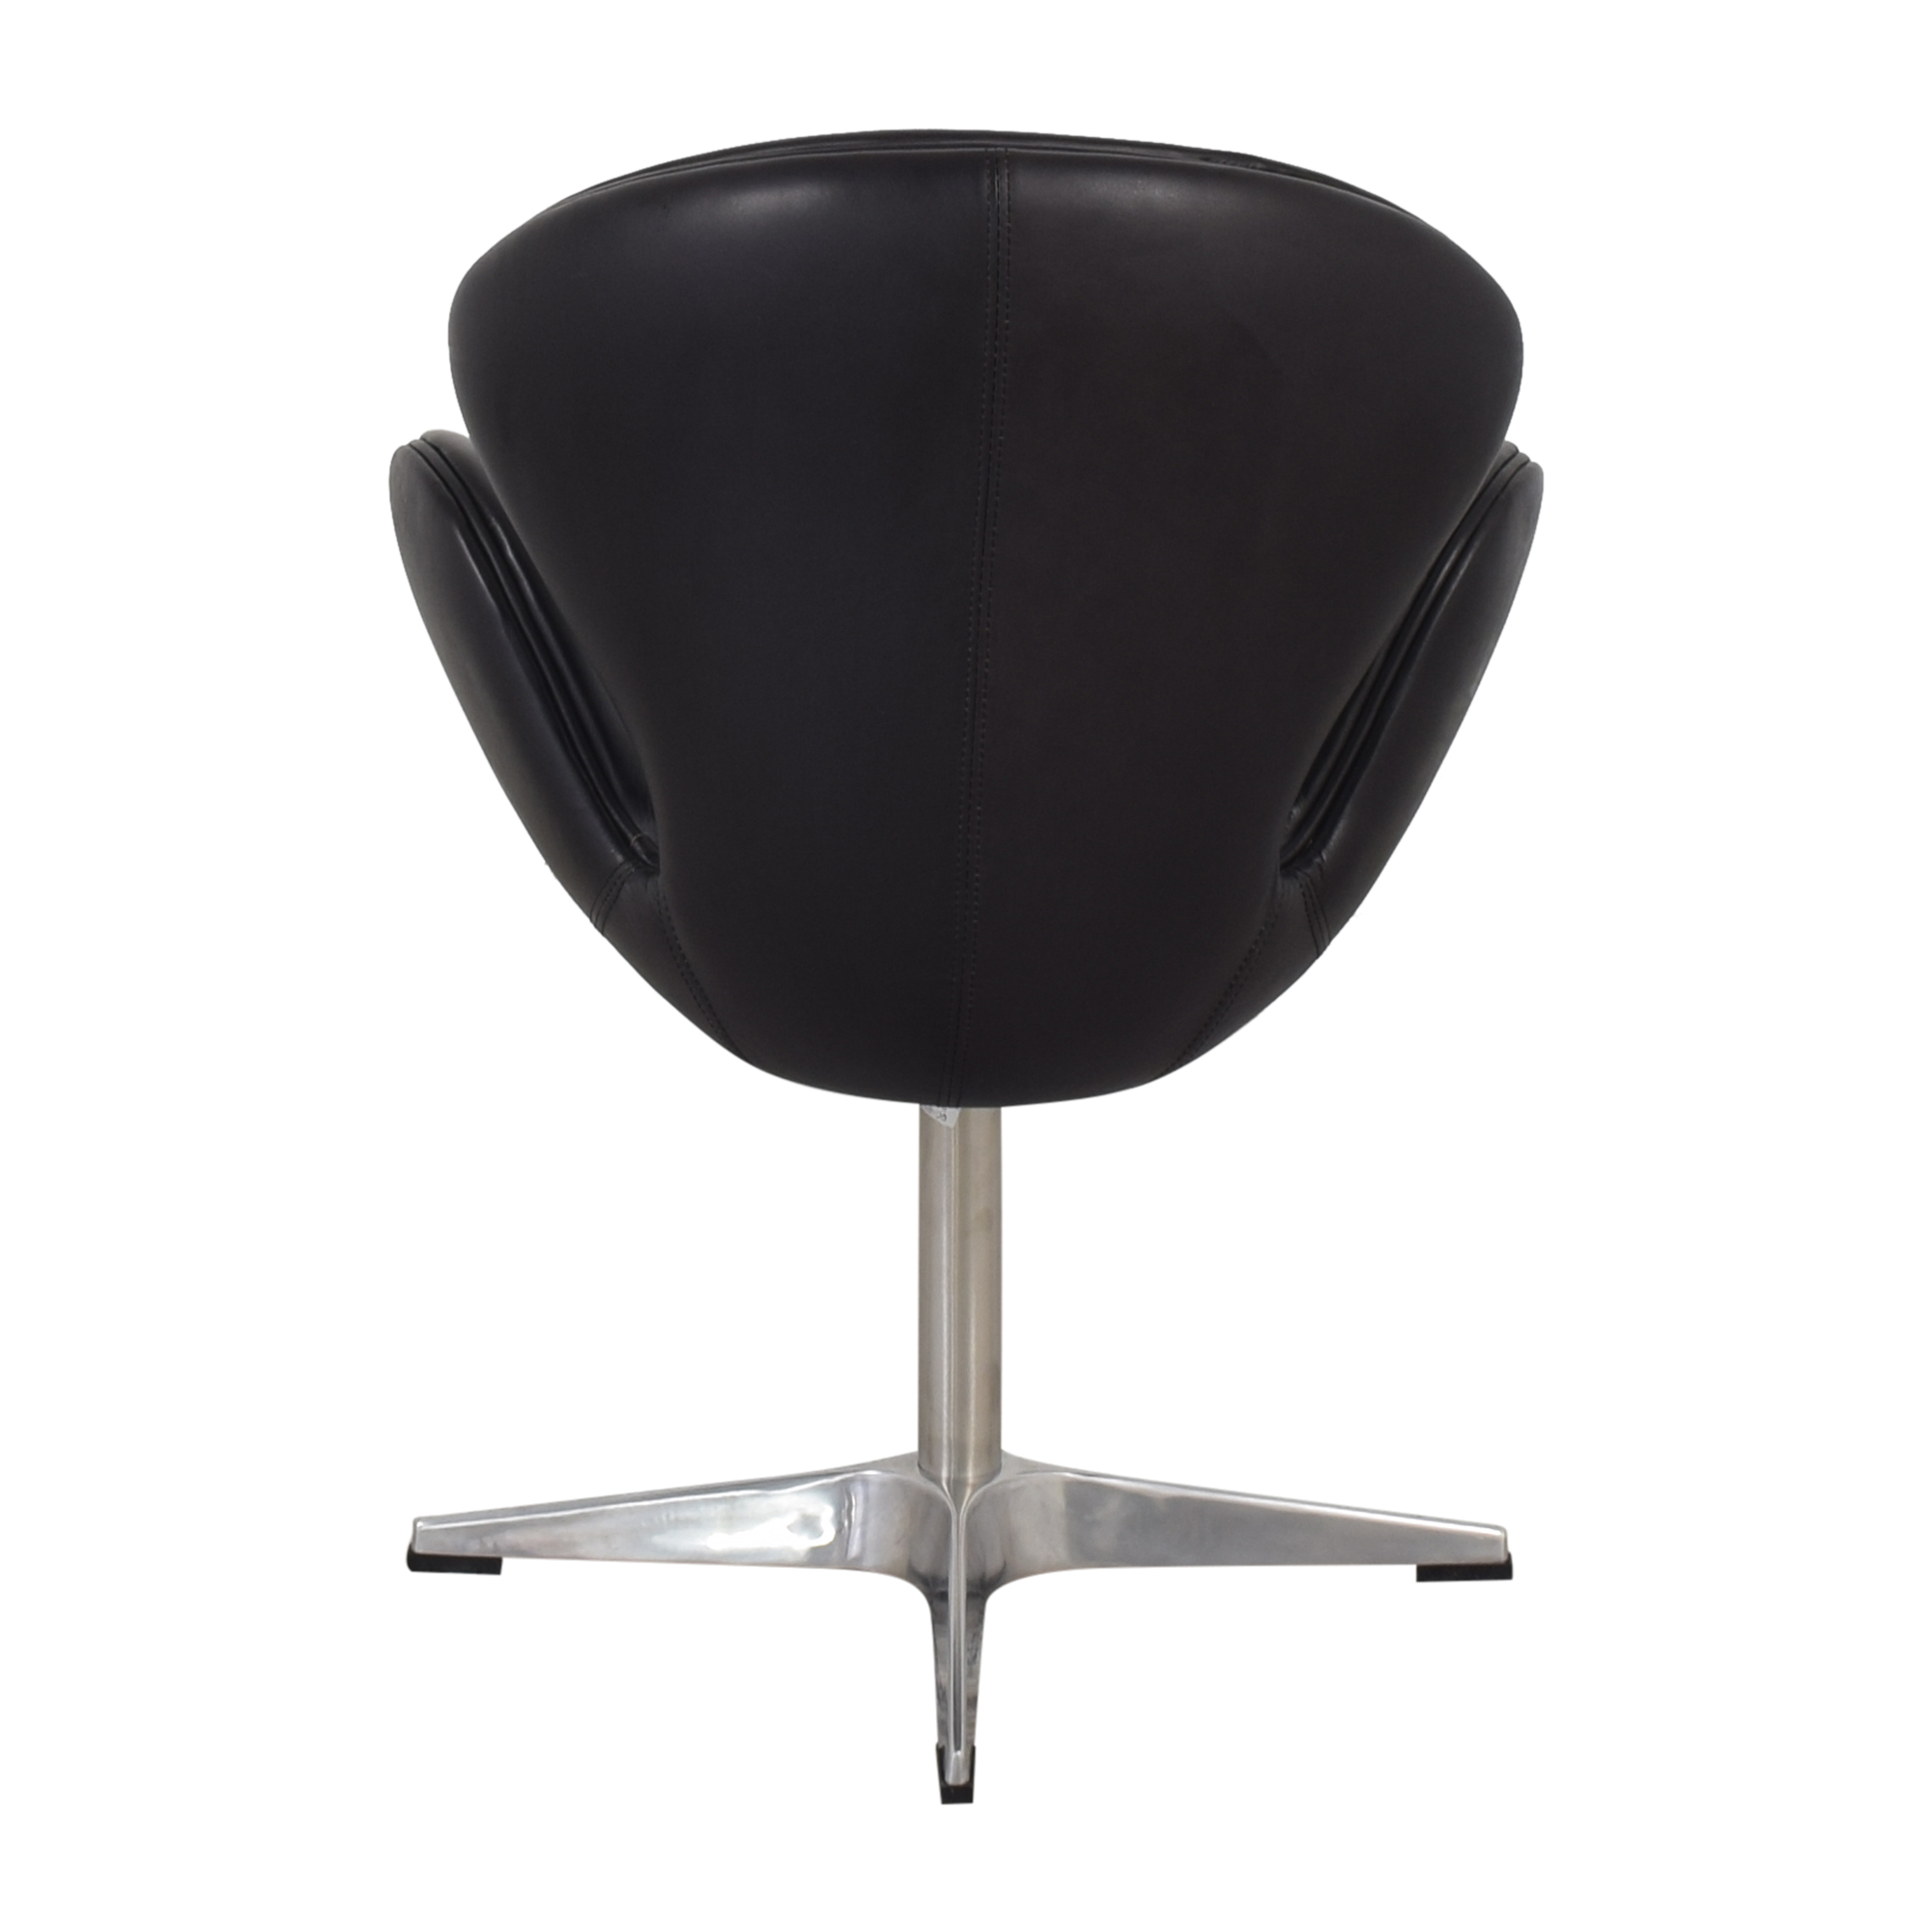 ABC Carpet & Home Jacobsen-Style Swan Chair / Chairs